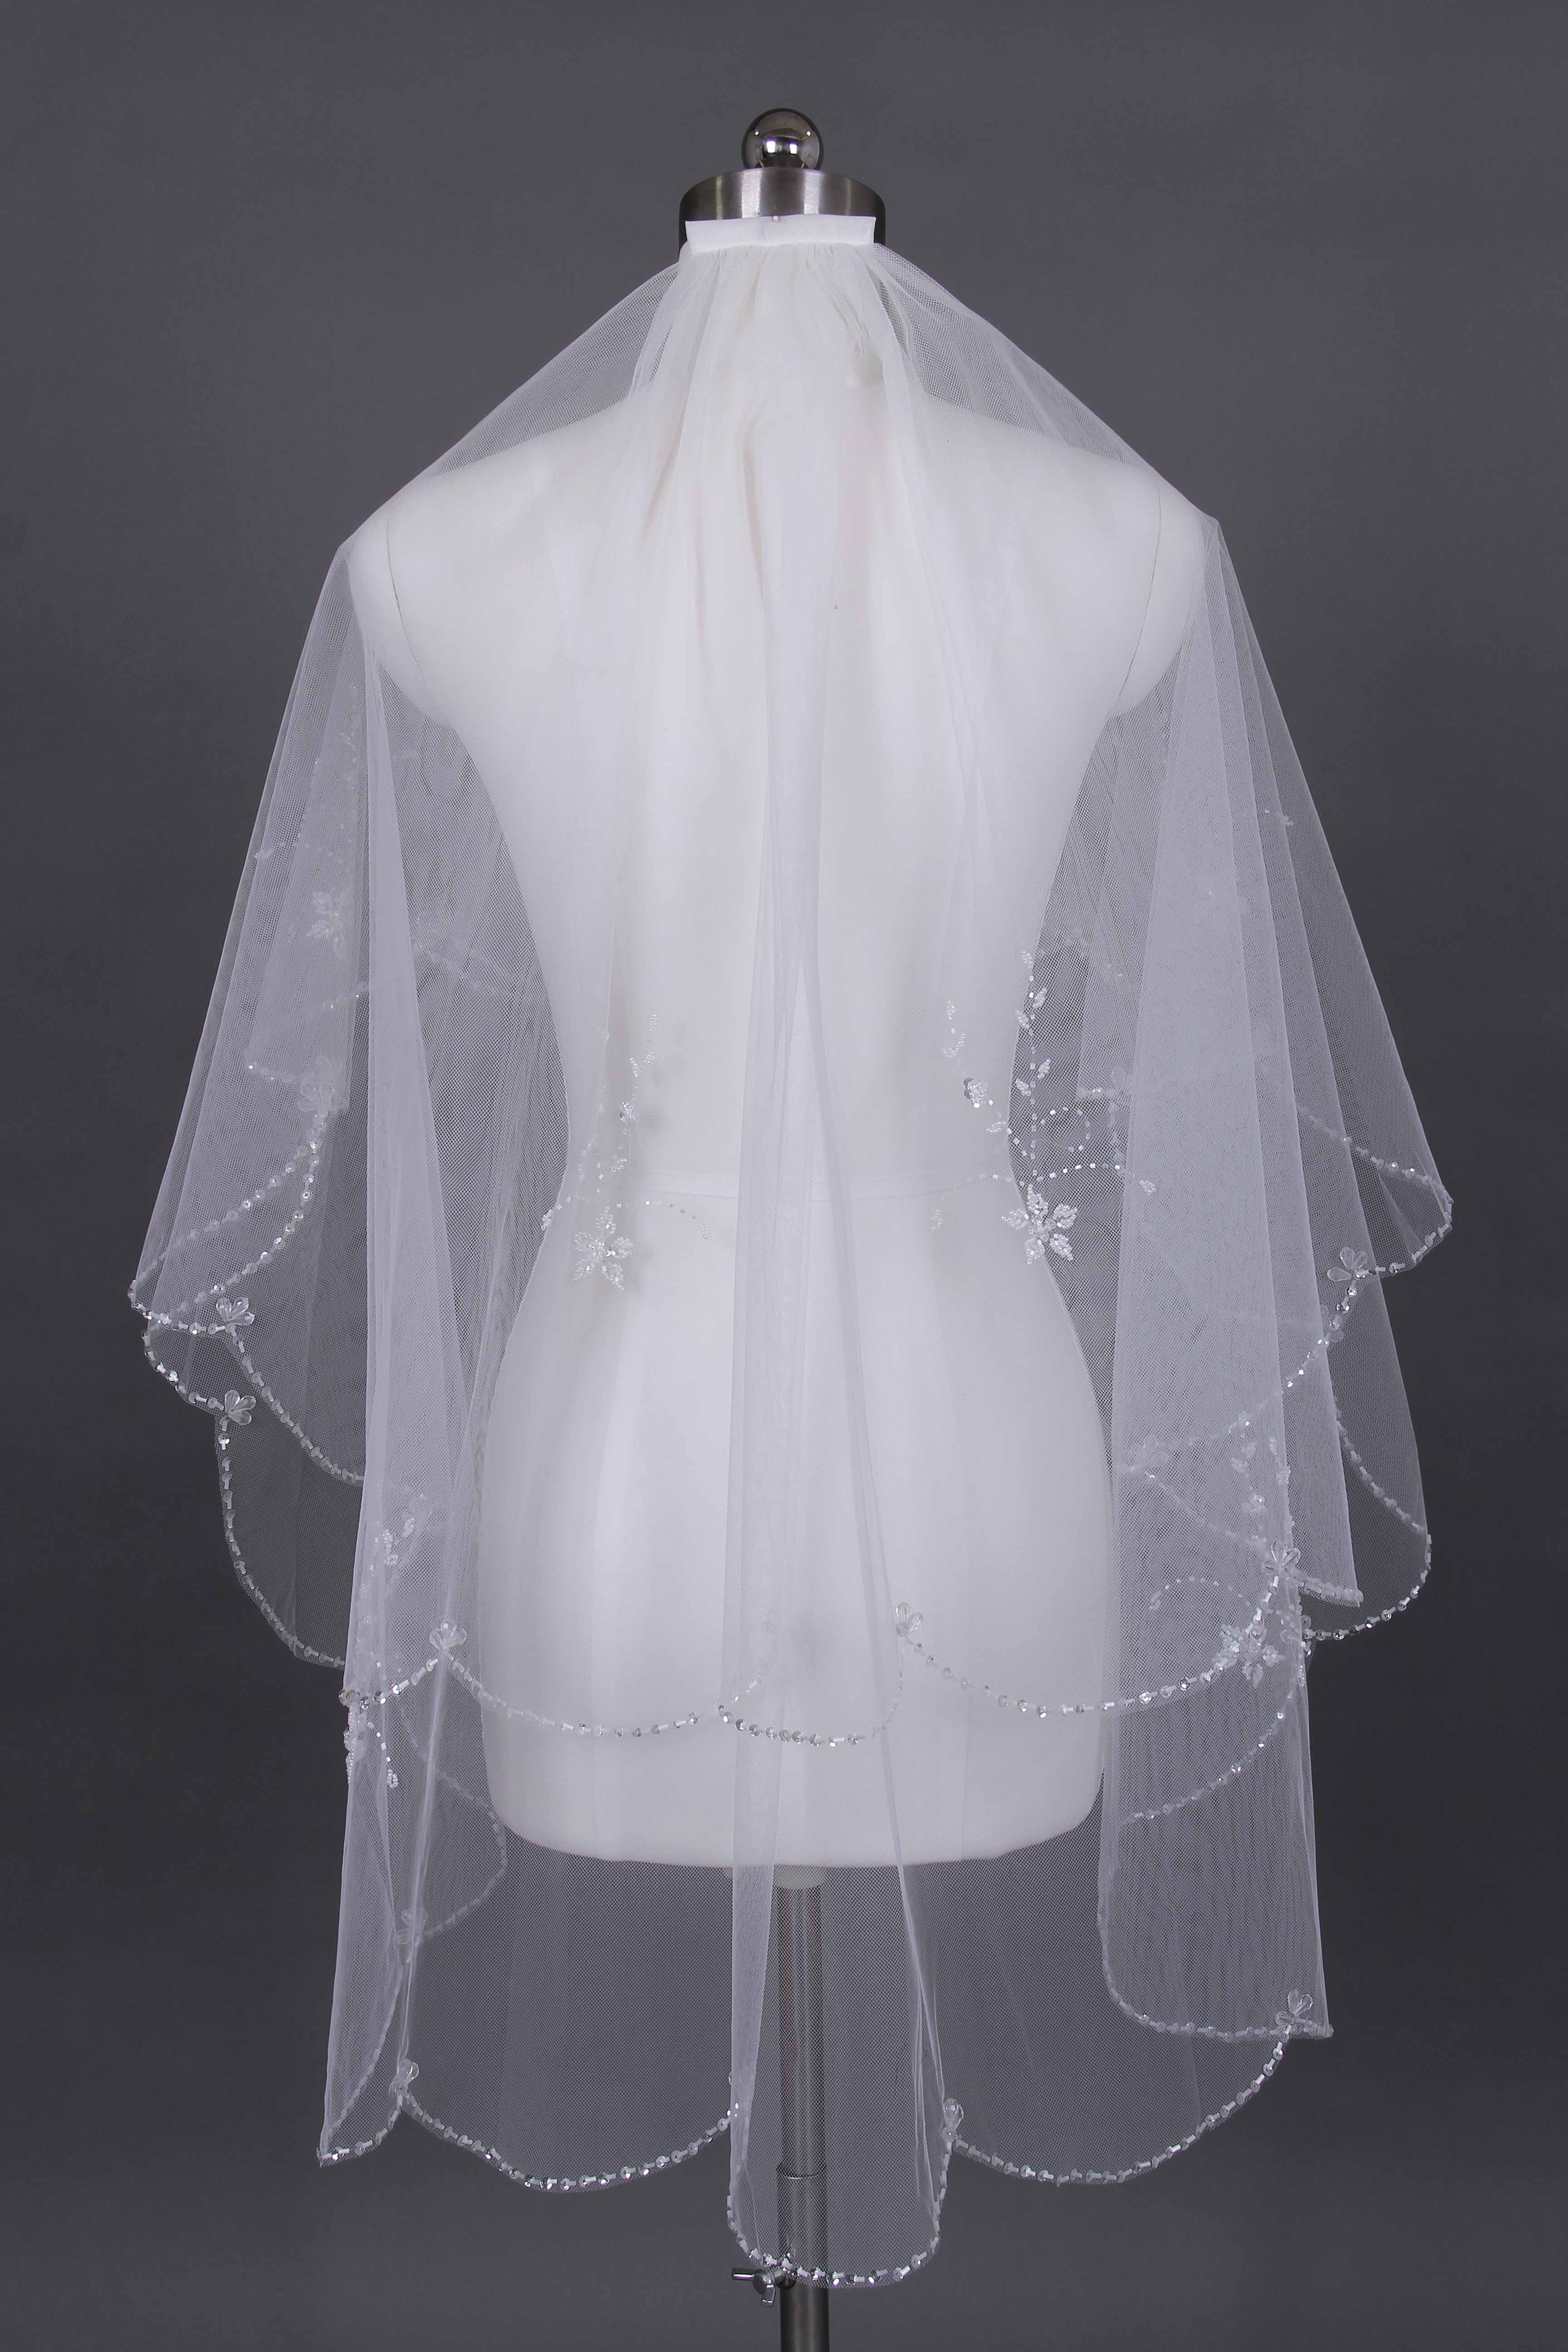 2 tier scalloped veil Elbow Length Bridal Veil hand beads embroidered White Beige wedding veil& comb